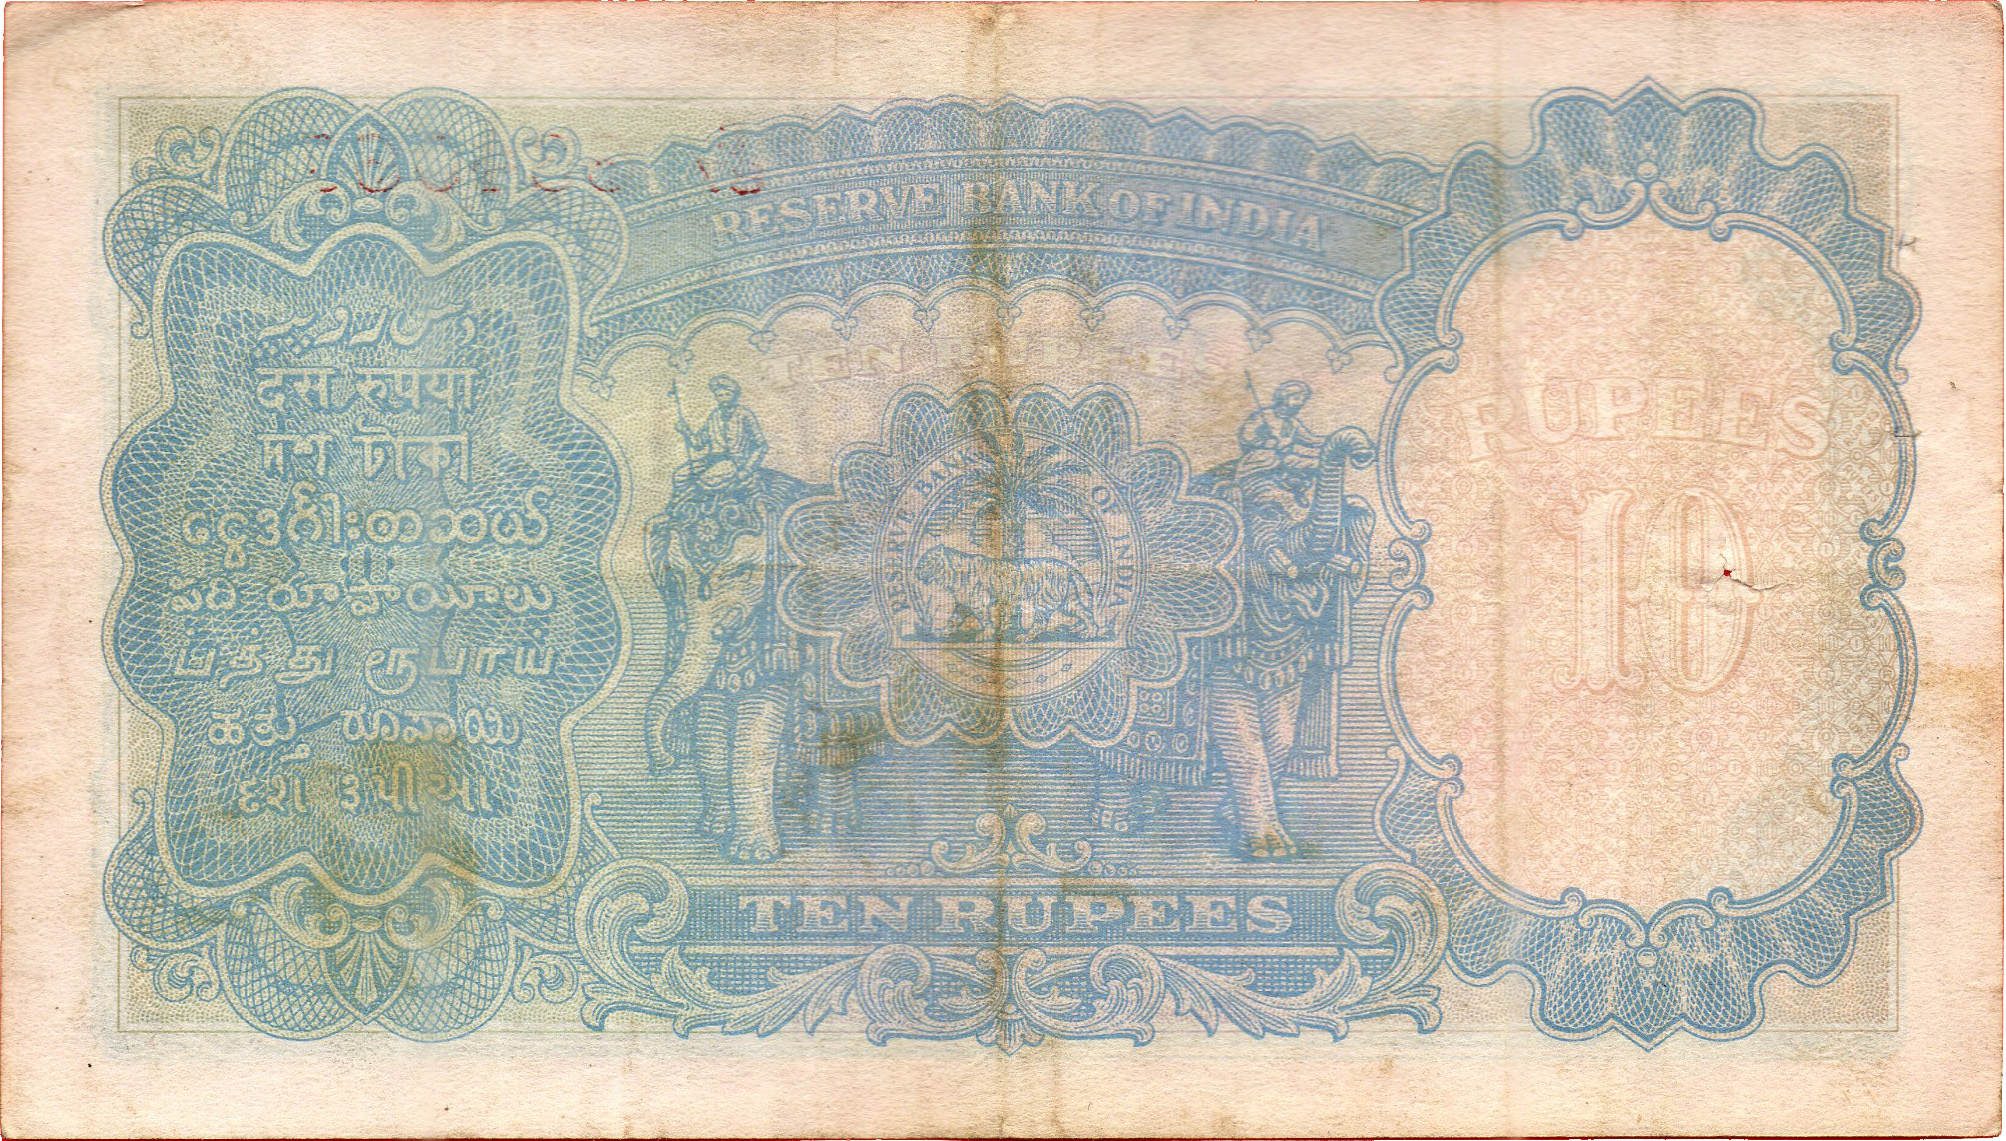 Rupee Note Change Ten-rupee Note Issued by The